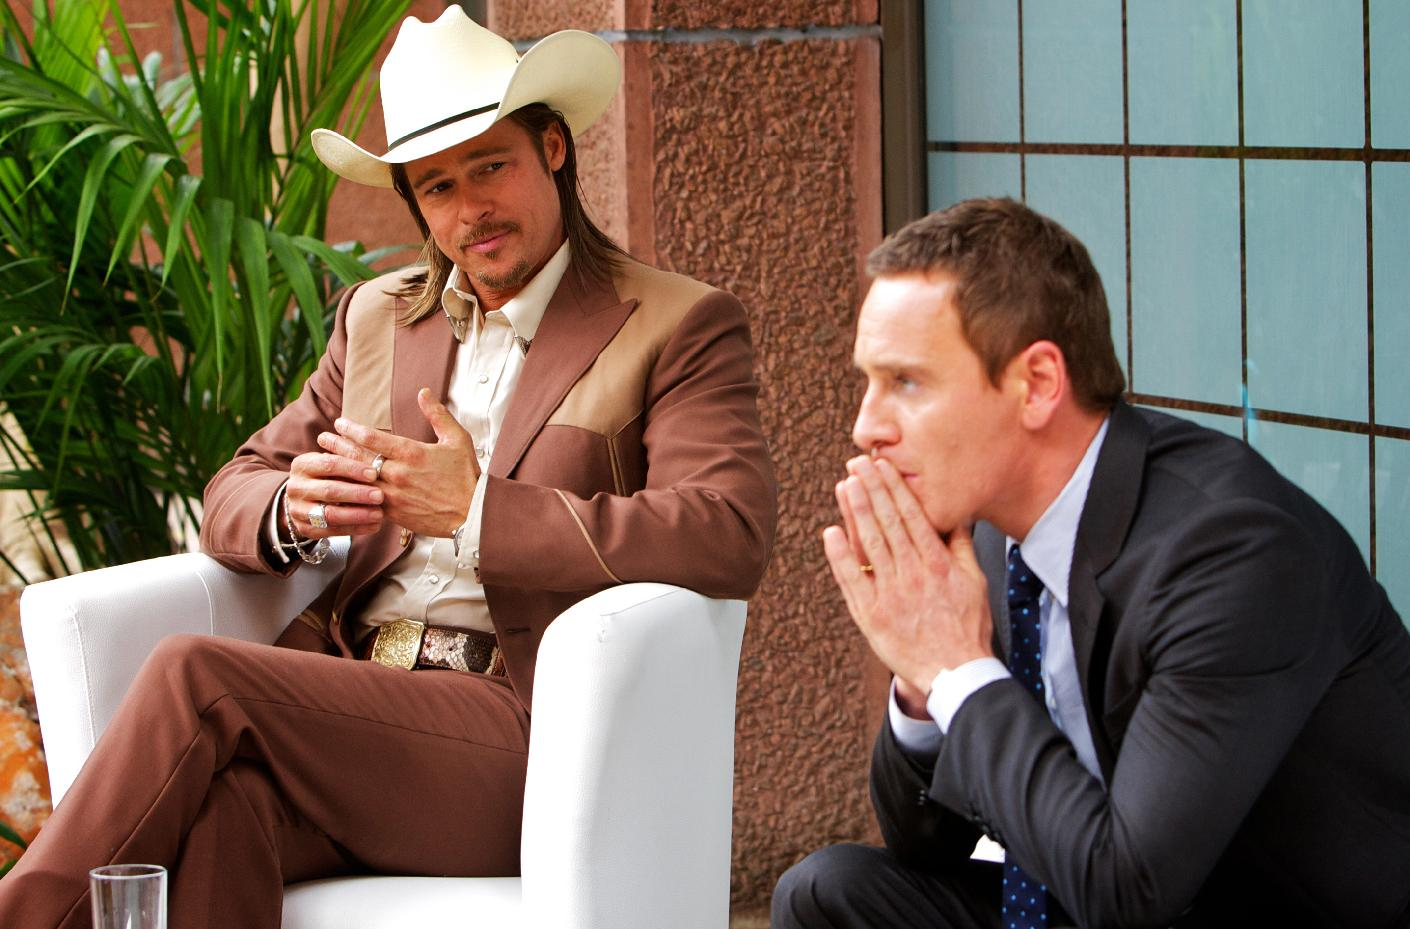 Brad Pitt and Michael Fassbender in 'The Counselor' (Photo: 20th Century Fox)